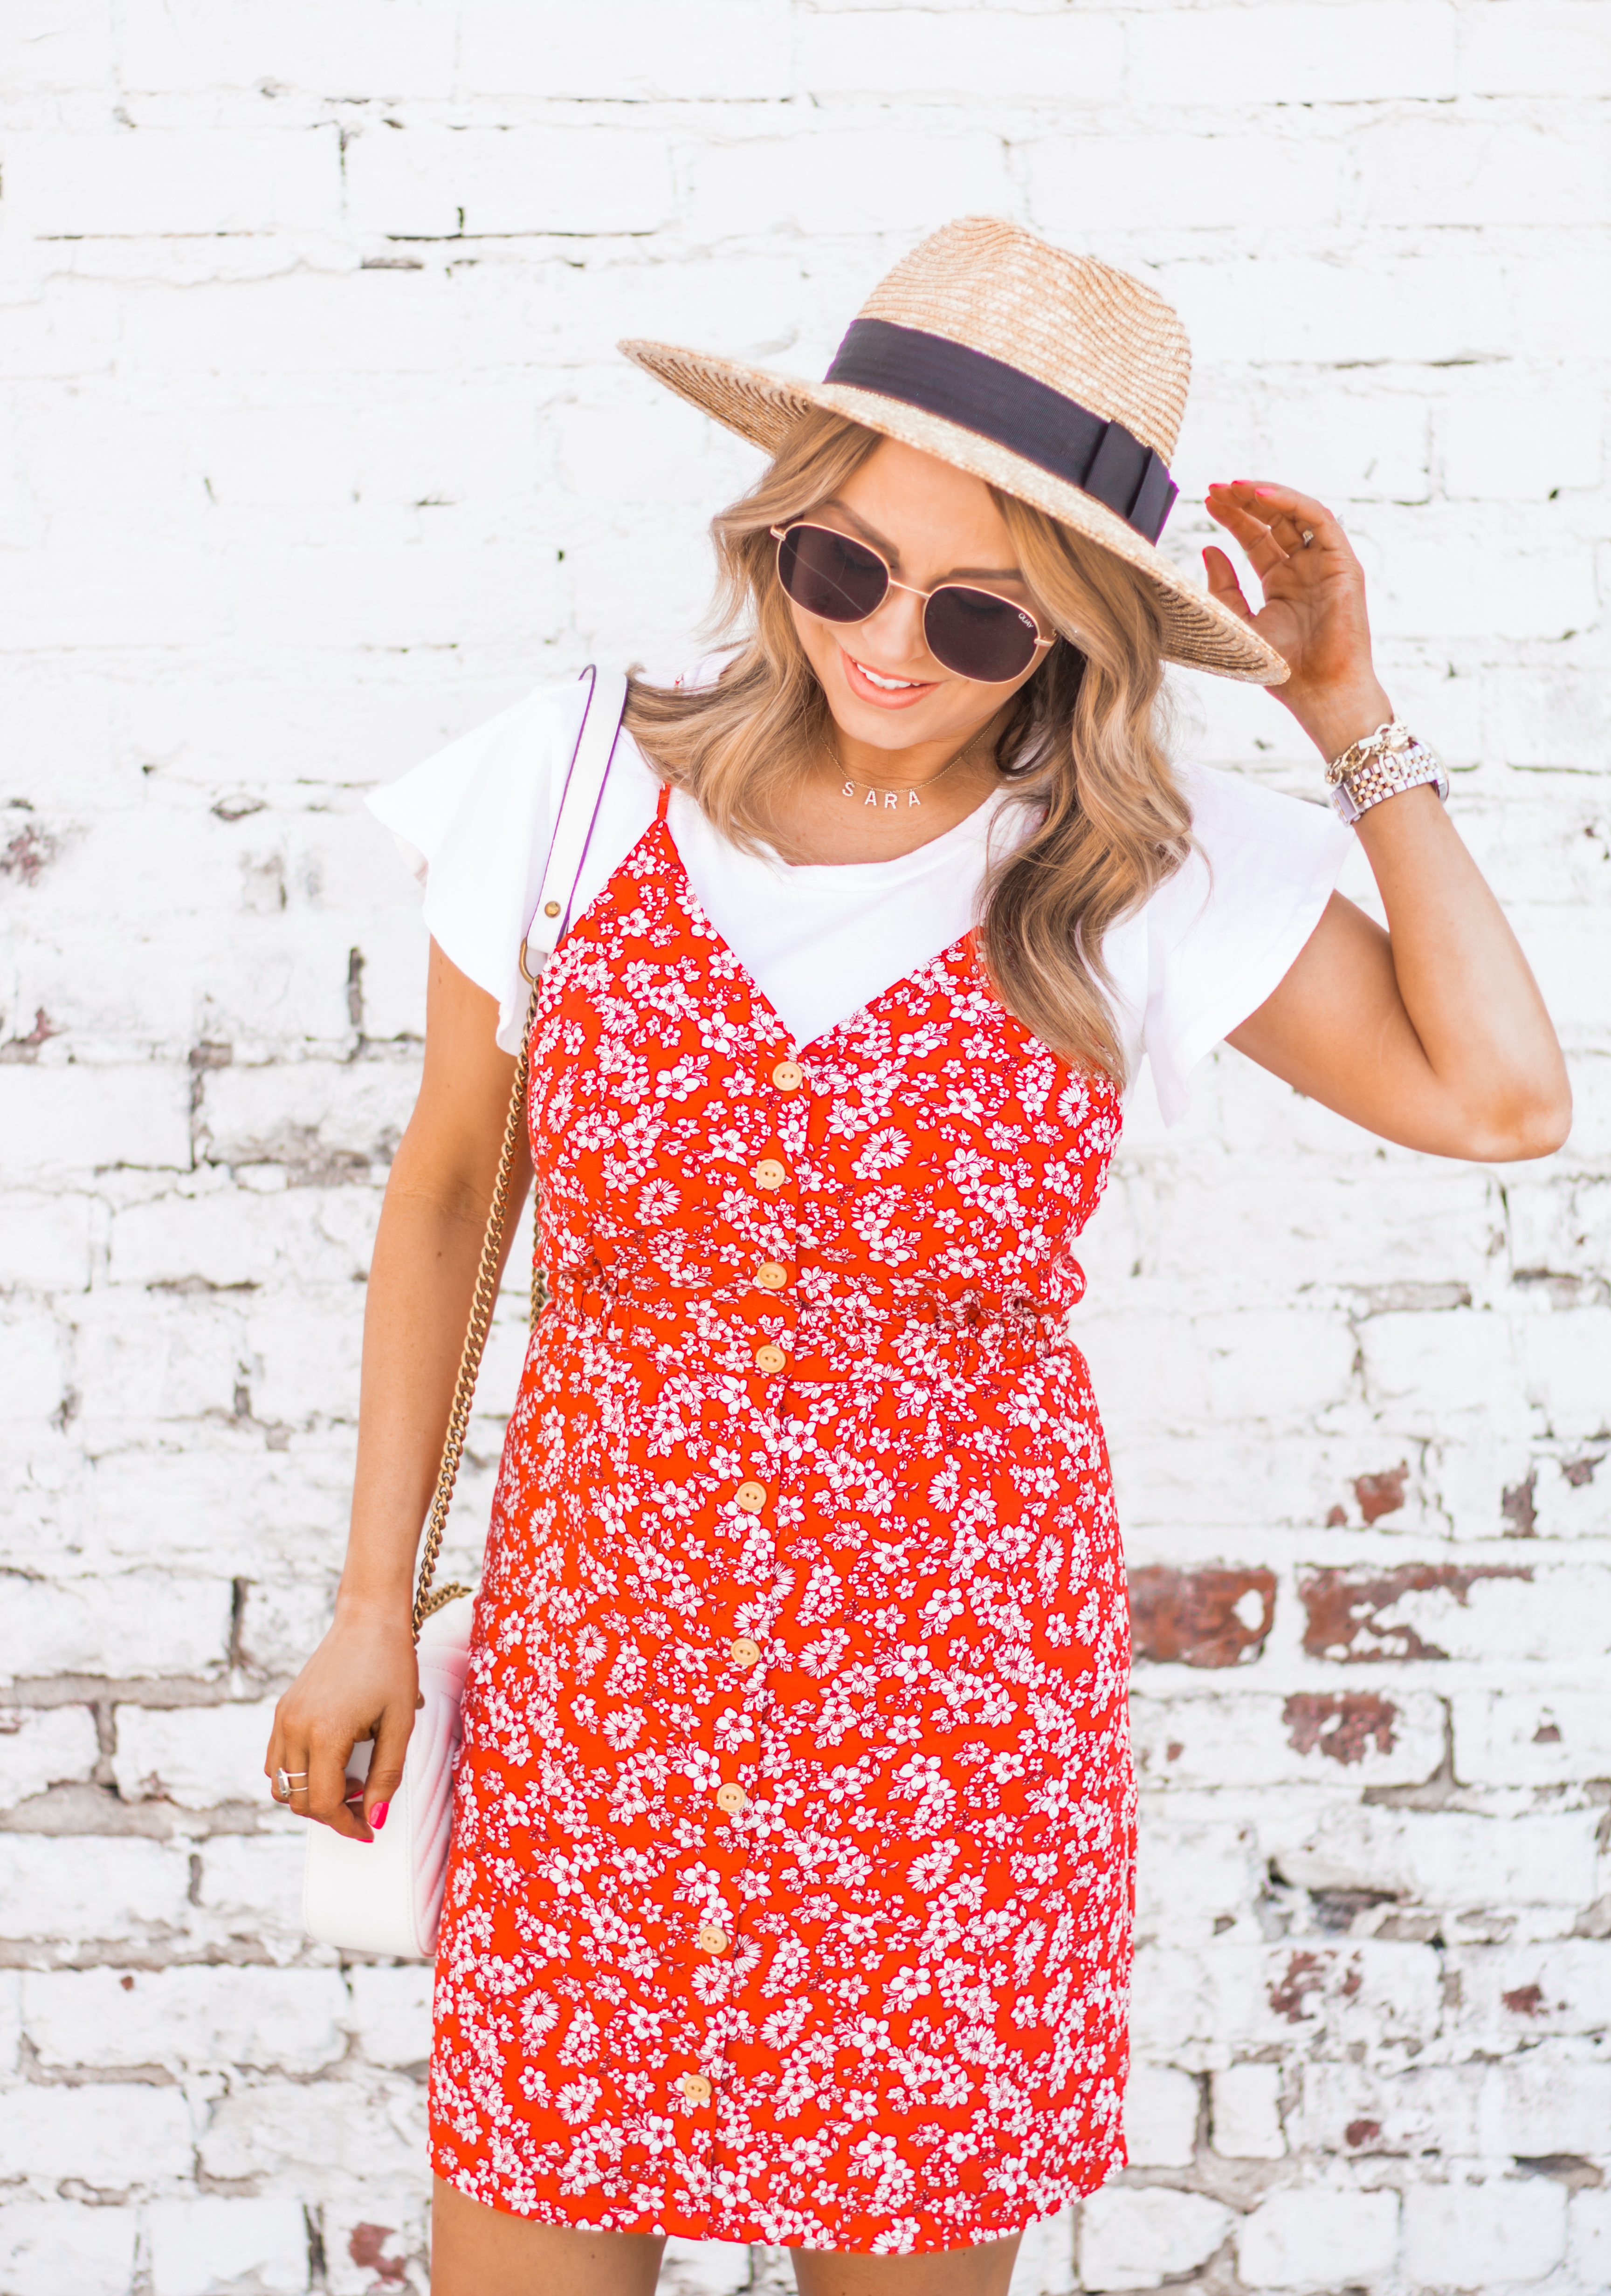 red-sundress-spring-summer-dress-floral dress-women's fashion- spring fashion-summer fashion-brixton hat-white booties-Omaha blogger-sabby style-8